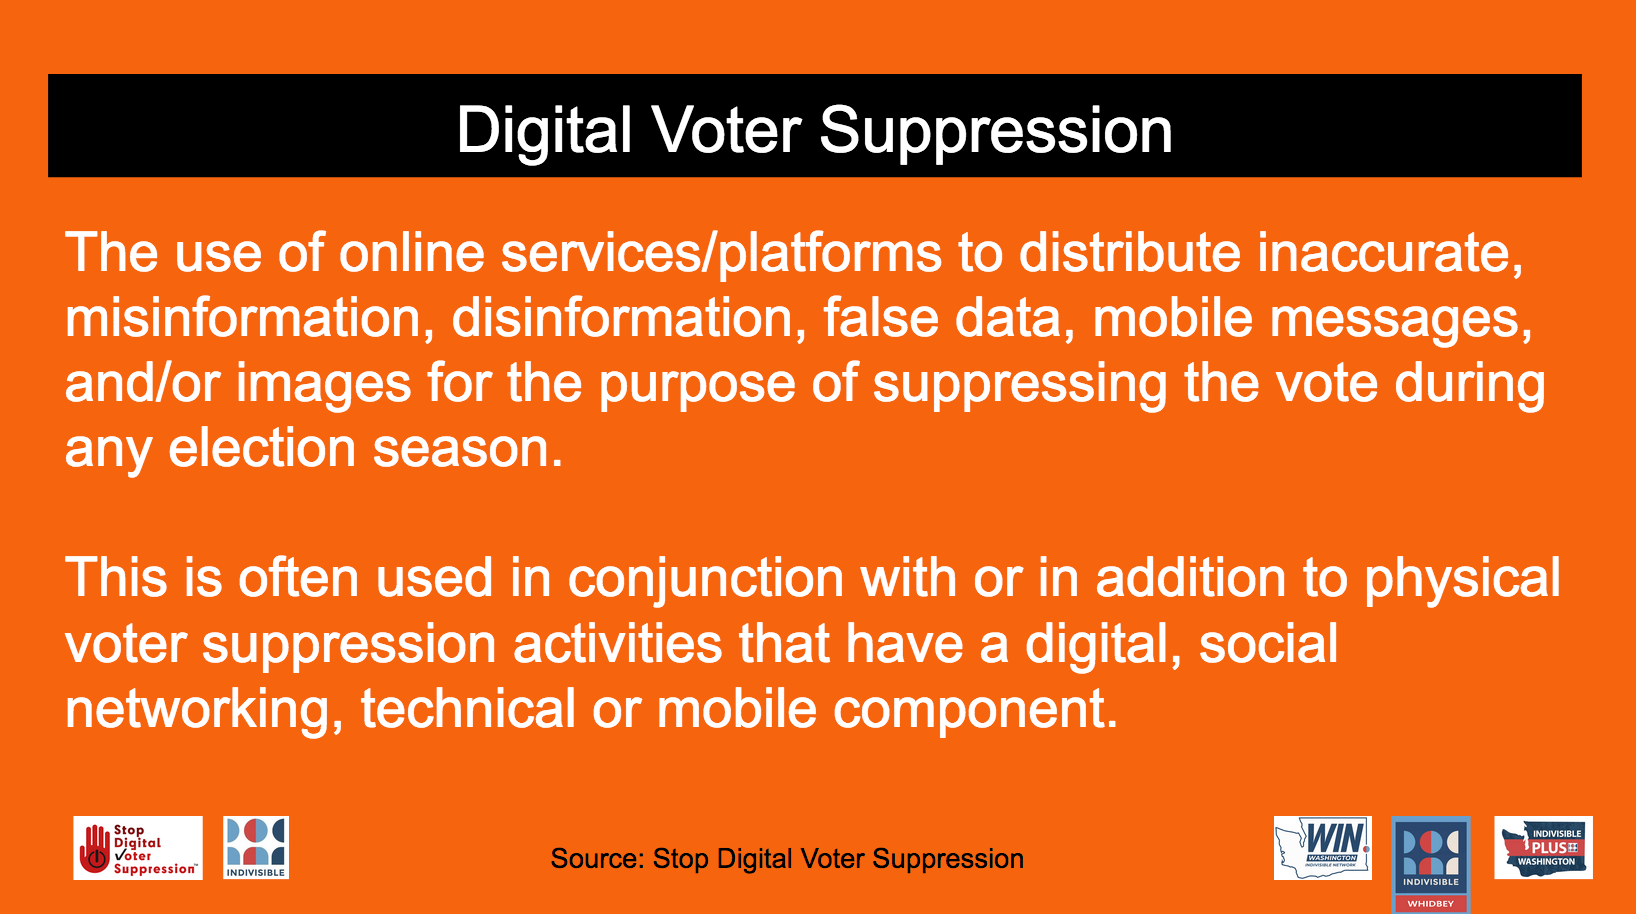 Digital Voter Suppression: The use of online services/platforms to disinformation for the purpose of suppressing the vote